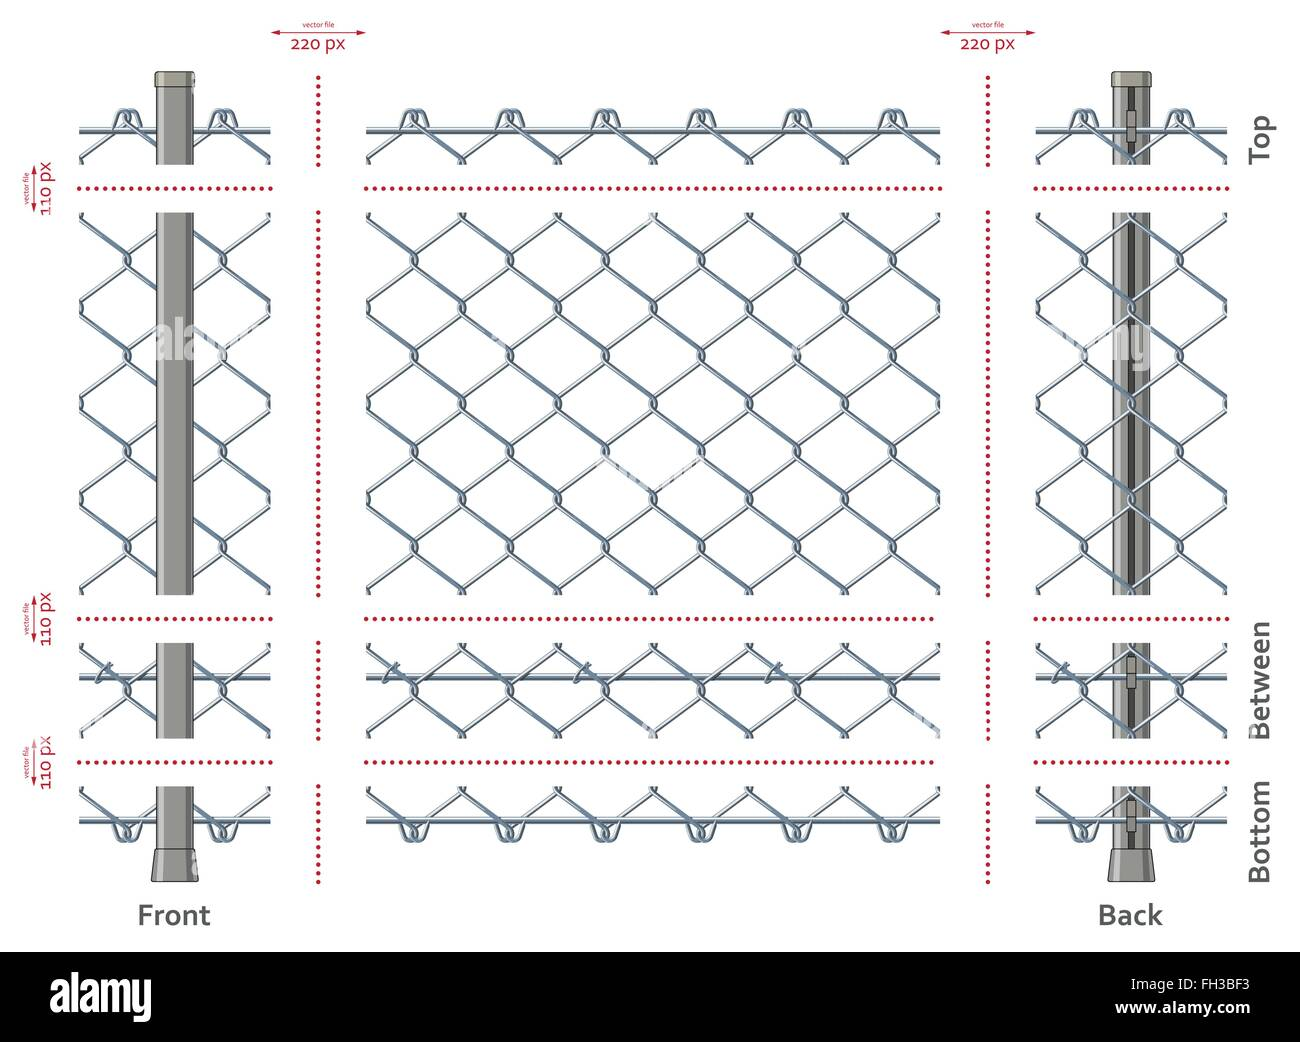 Highly detailed prison or refugee camp fence - Stock Vector